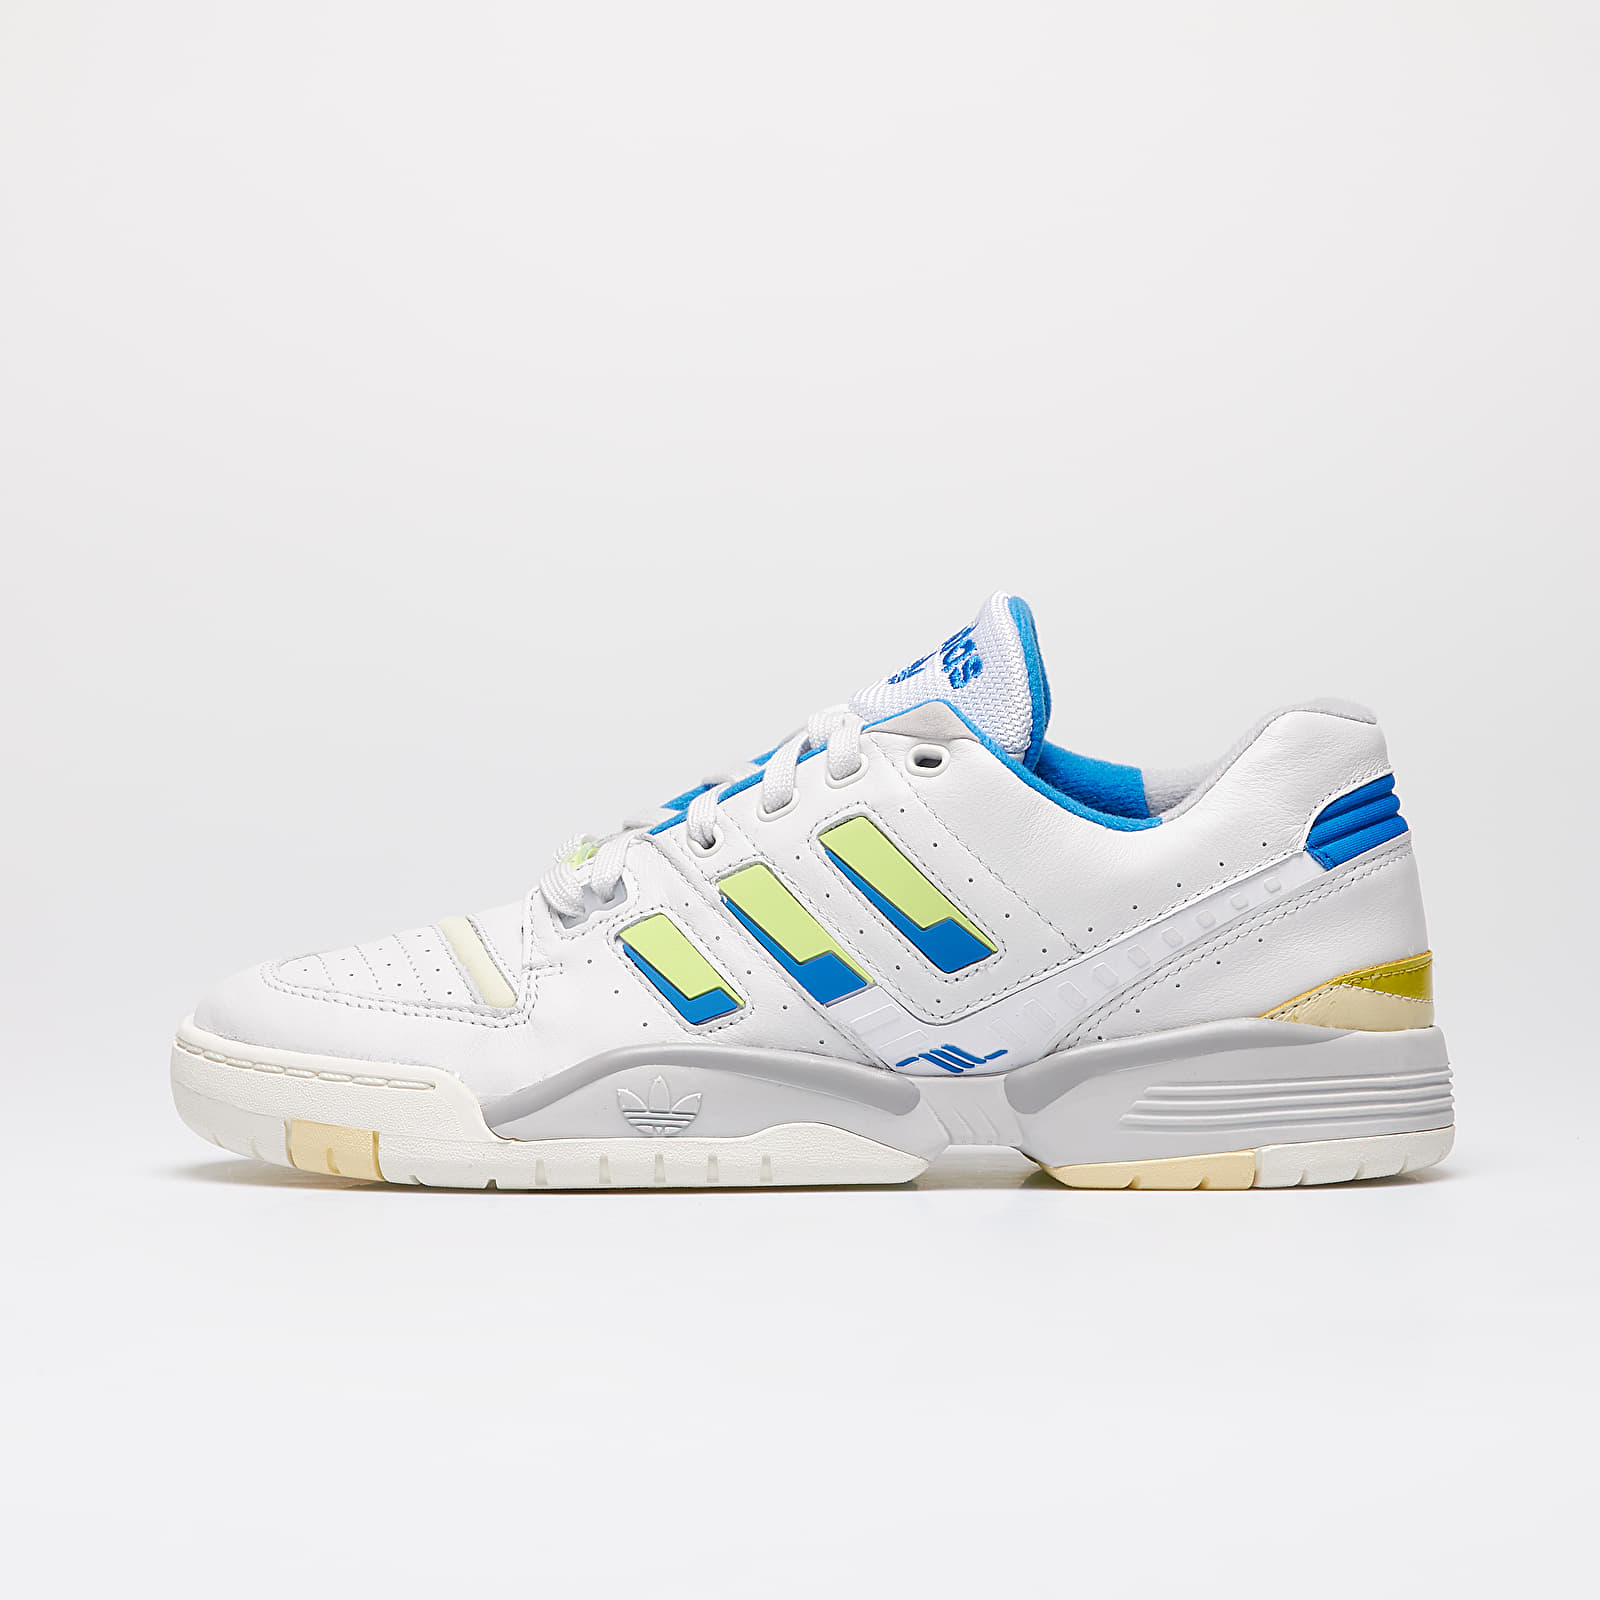 Chaussures et baskets homme adidas Torsion Comp Crystal White/ Siggnr/ Glow Blue